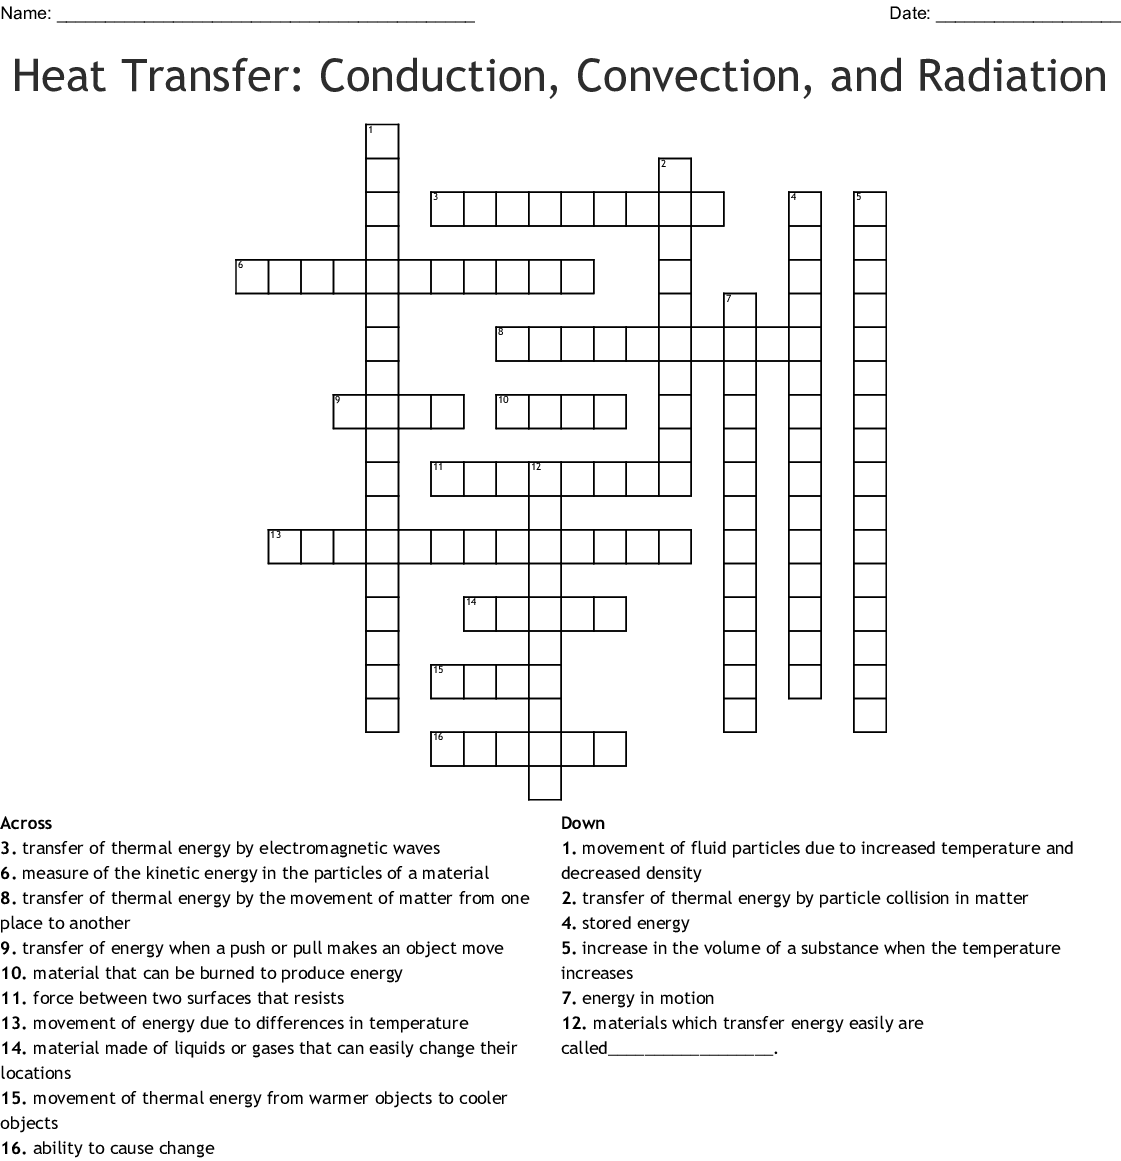 Heat Transfer Conduction Convection And Radiation Crossword